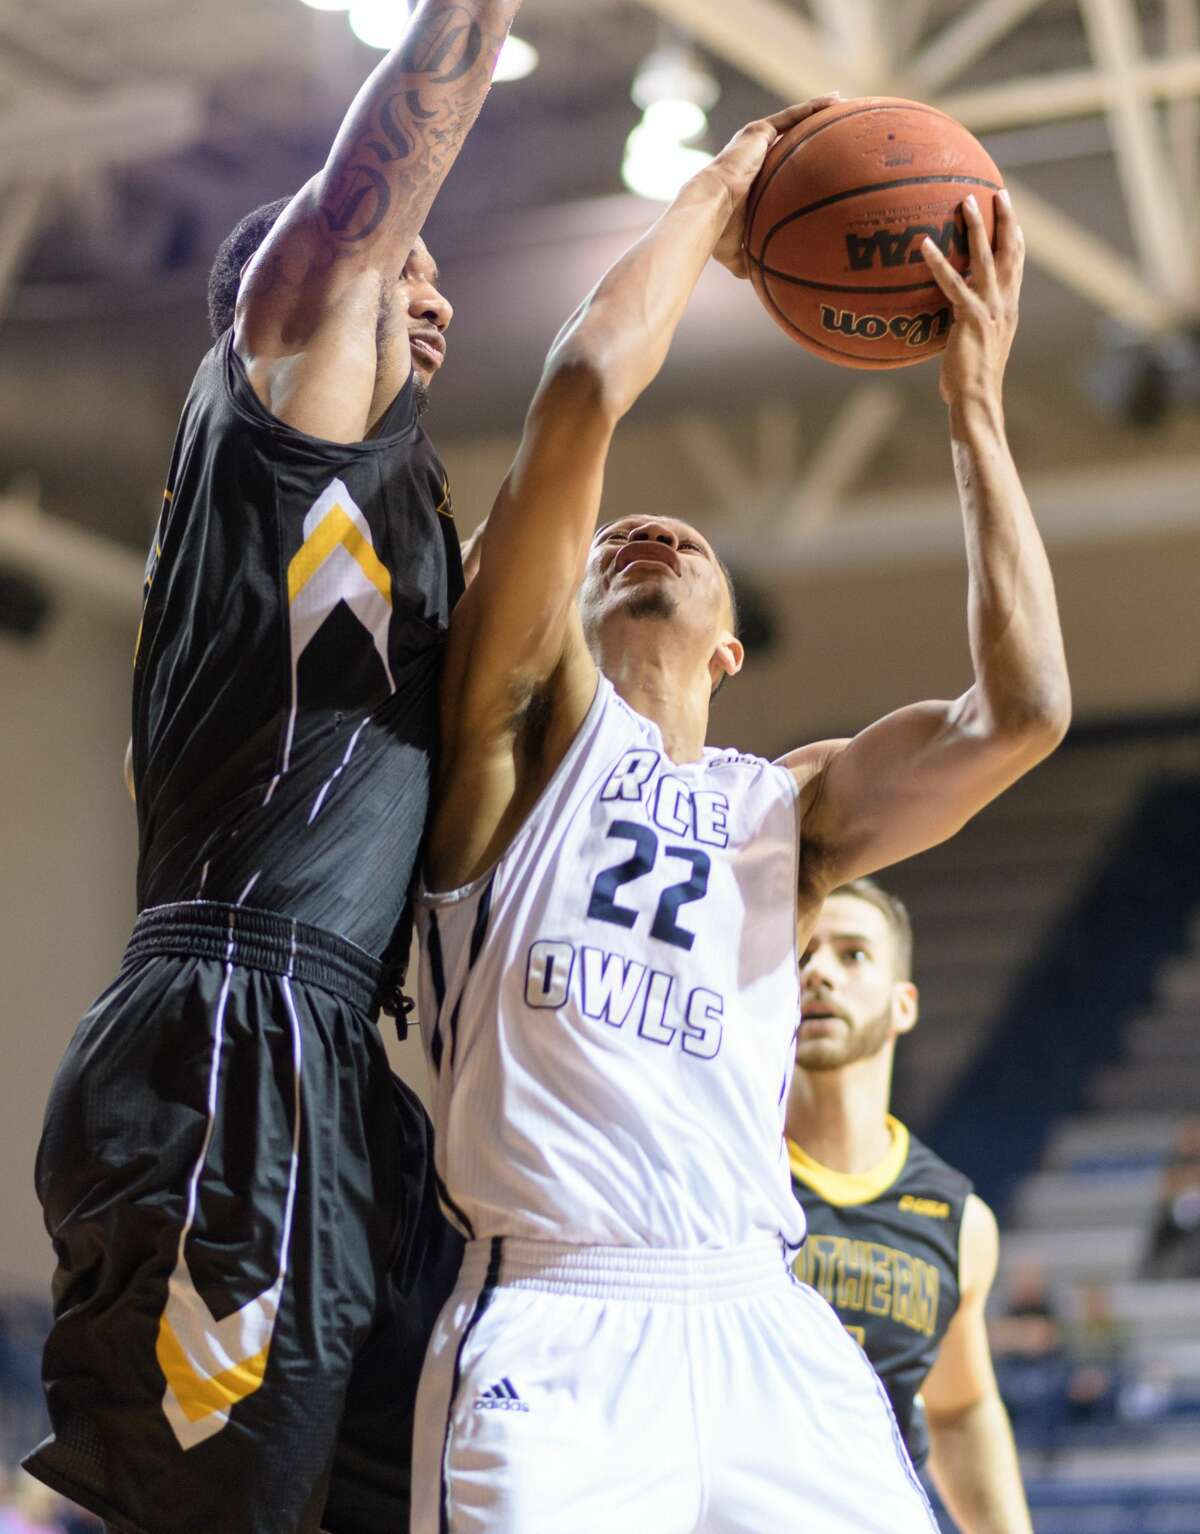 Marcus Jackson (22) of the Rice Owls drives for a layup against the Southern Miss Golden Eagles in a college basketball game on Thursday, February 23, 2017 at Tudor Fieldhouse on Rice Campus.